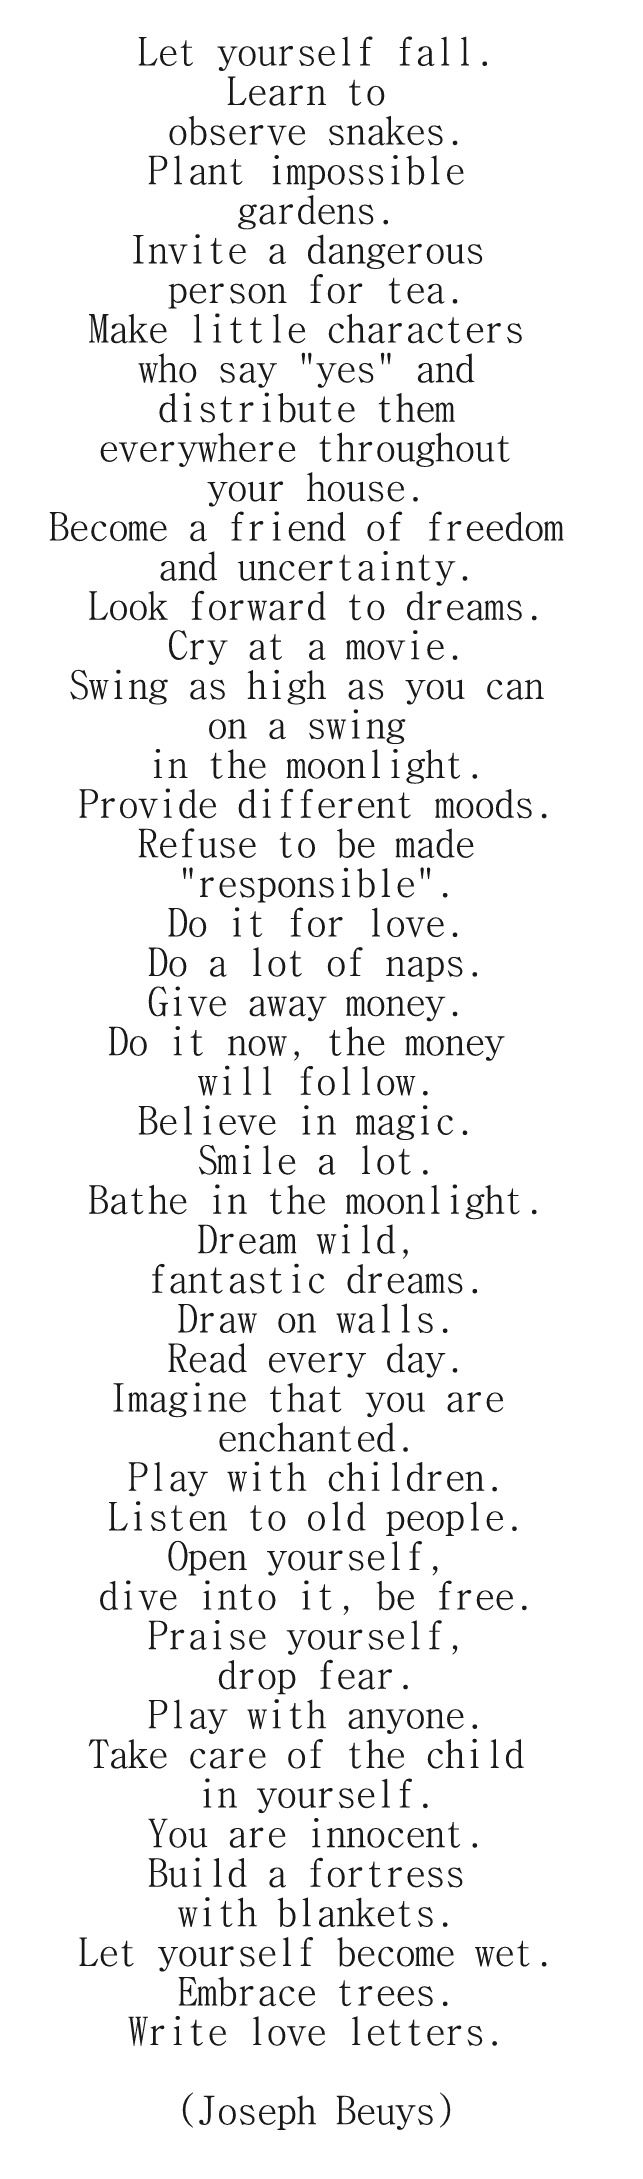 Life according to Joseph Beuys - loving all of it, except the part about snakes! Jeepers creepers!!